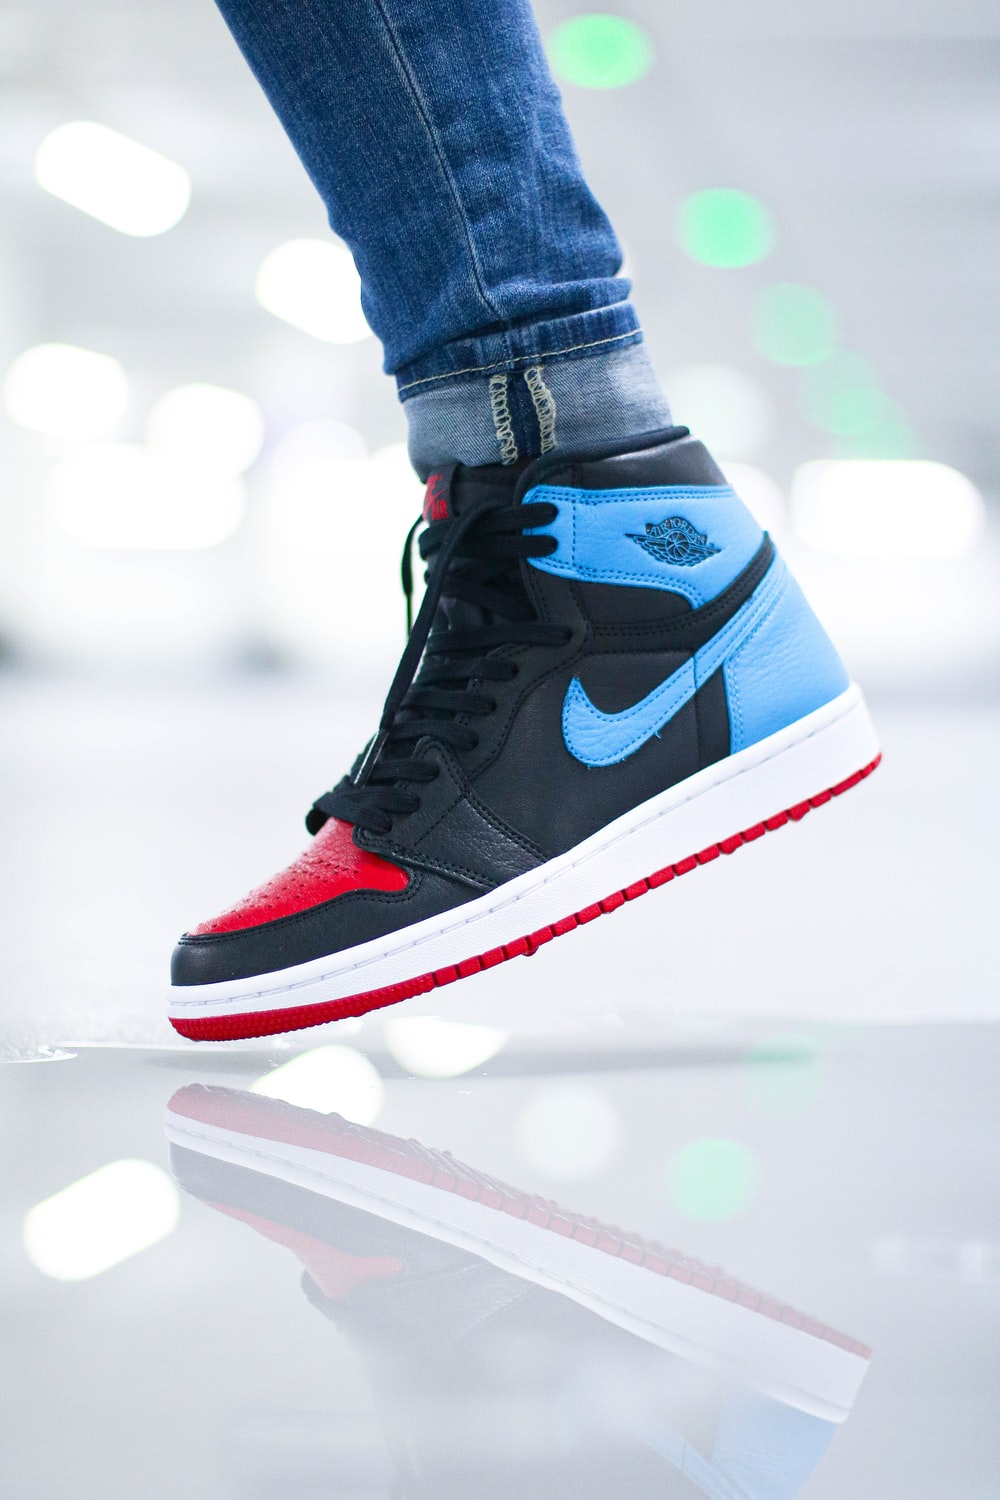 person wearing black blue and white nike air jordan 1 shoes